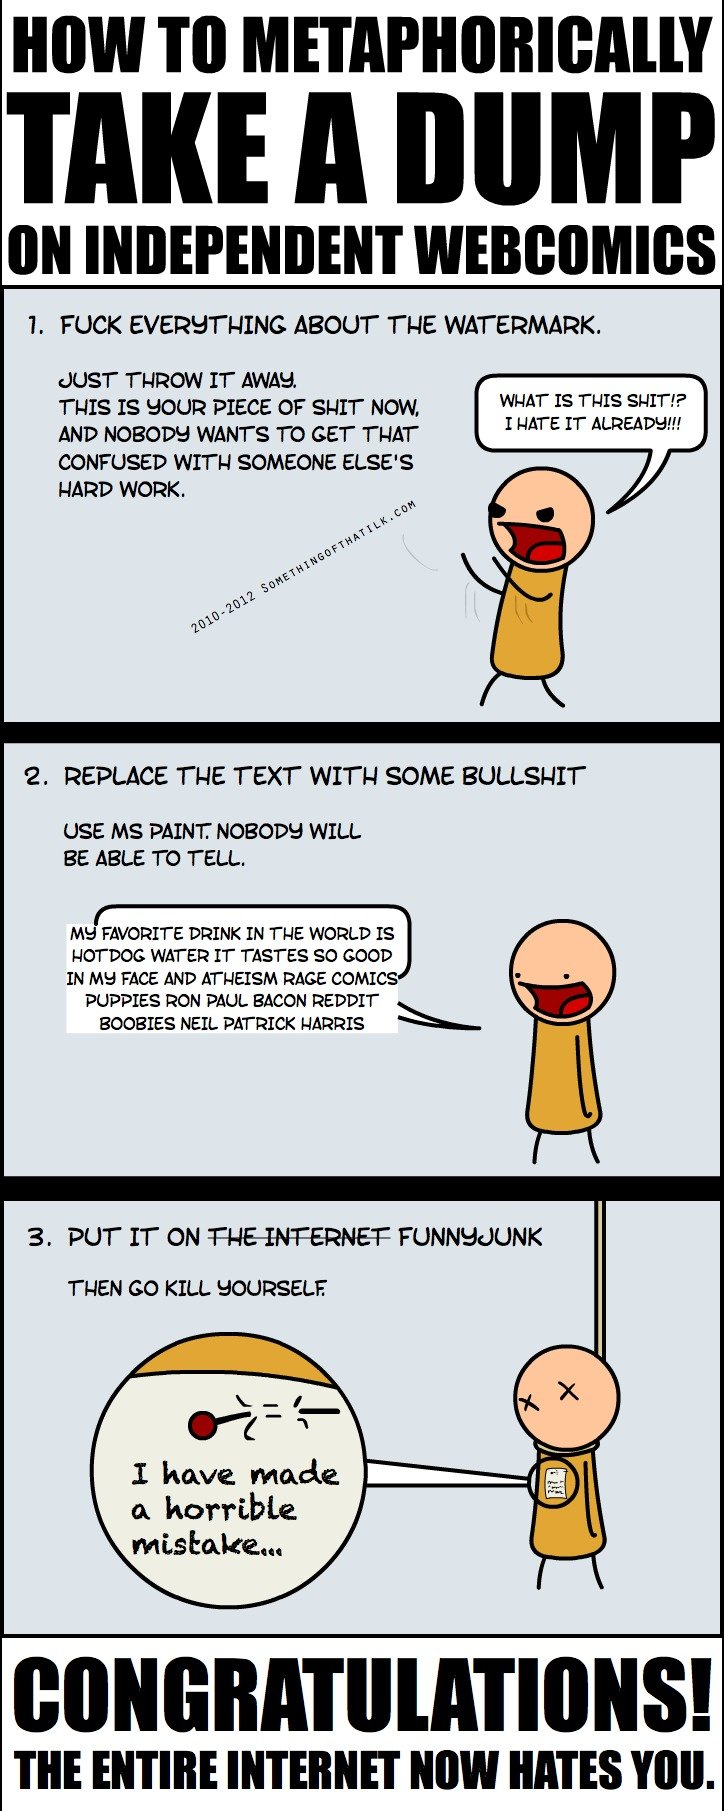 """Take a dump on webcomics. just read this, thought it was funny. MIN Tait ' TANE A DUMP lim INDEPENDENT ) I. FUCK EVEREYTHING ABOUT OTIE WATERMARK. l"""" THROW IT A"""